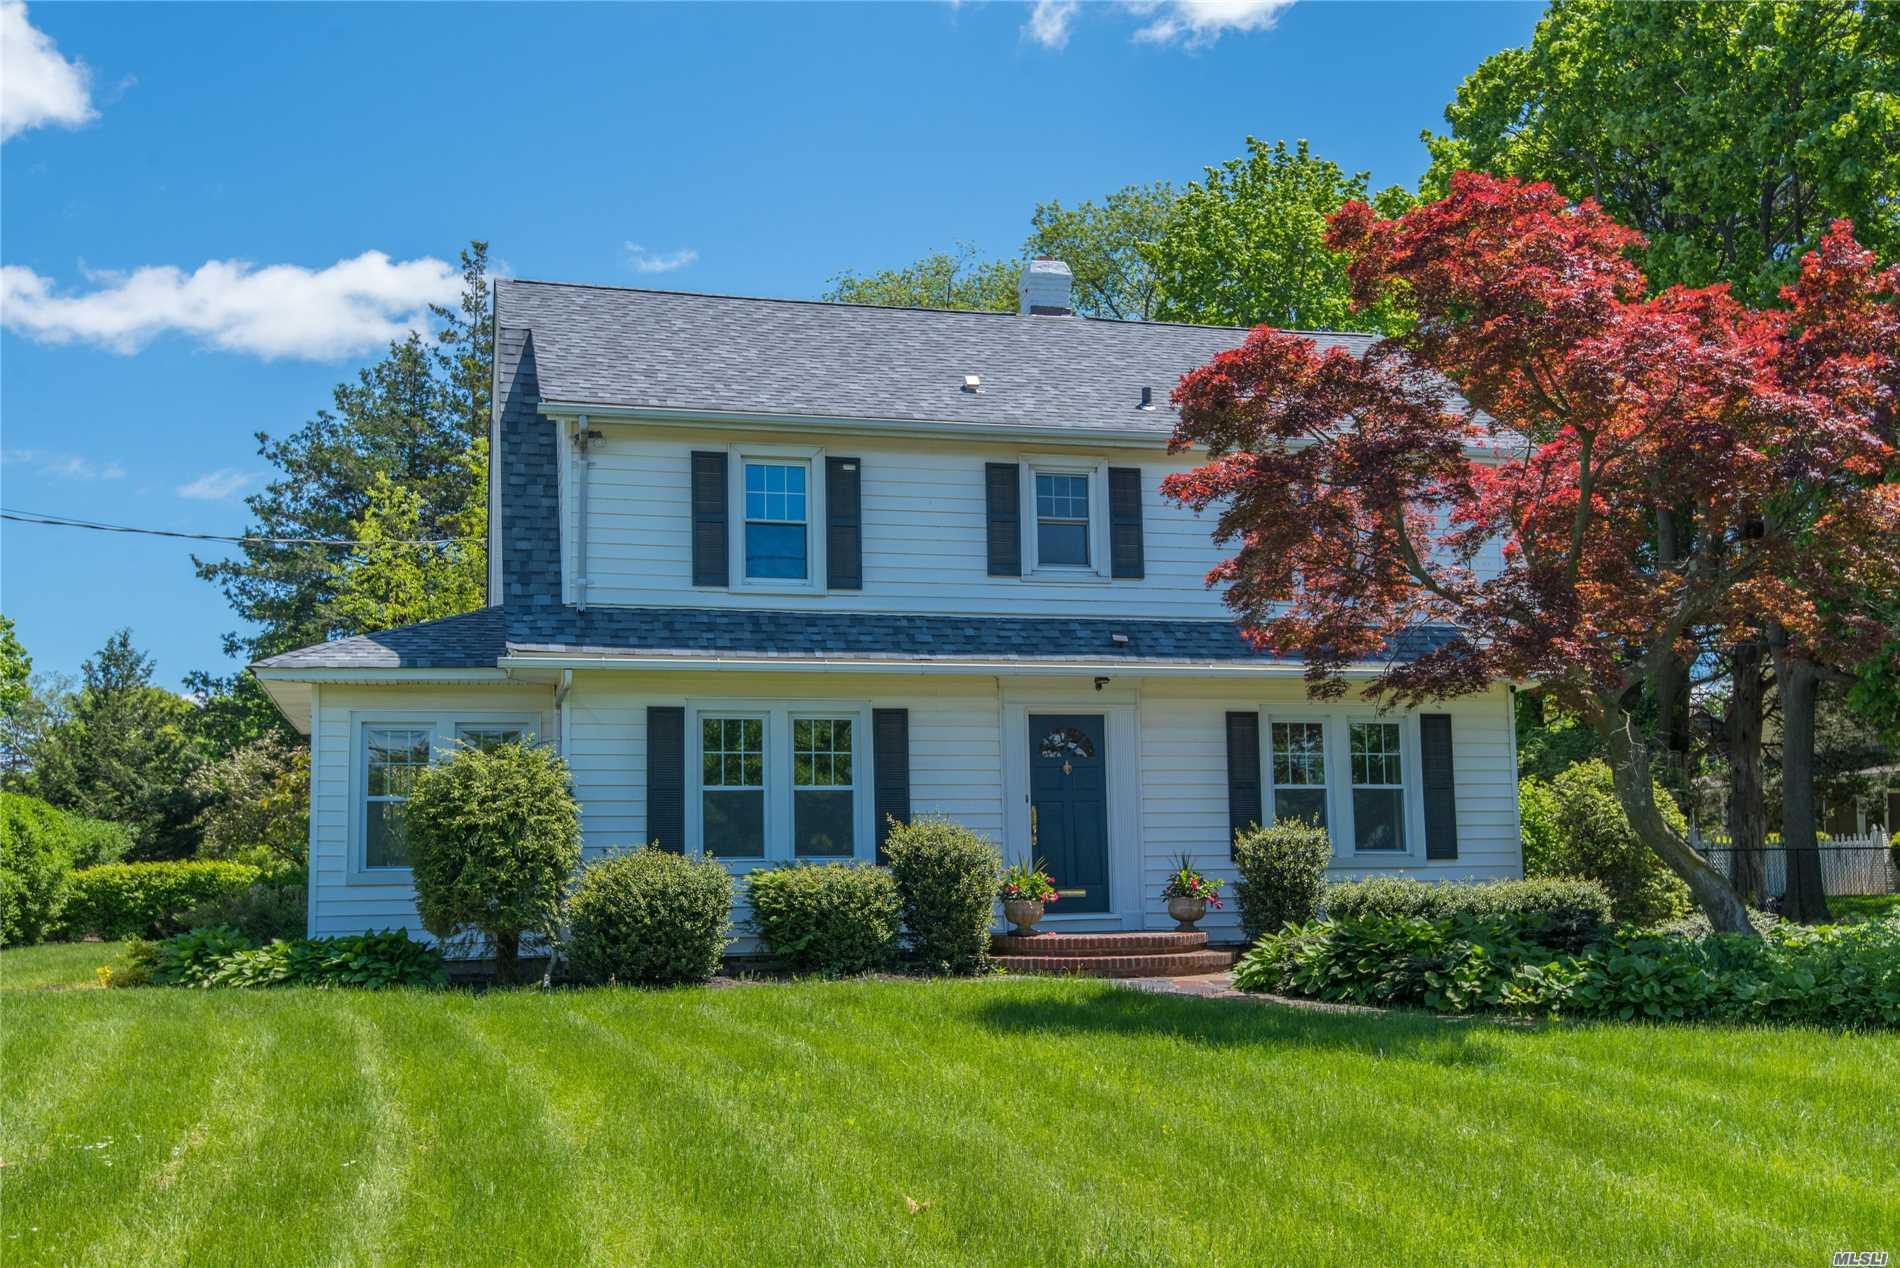 2018 Renovated Colonial Sits On Oversized Corner Lot Just 1 Mile To Huntington Village. New Floors, Windows, Kitchen, Bathrooms, Laundry, & So Much More In This Early Century Home That Is Up To Date With All Your Modern Amenities. Sun Filled Kitchen Feat. Quartz Countertops & Stainless Steel Appliances Leads To Full Bath & Mud Room. Full Unfinished Basement W/ Storage. 2 Driveways Provide Ample Parking. Conveniently Located To All 2.6 Miles To Train, And 1.5 Mile To Gold Star Beach.